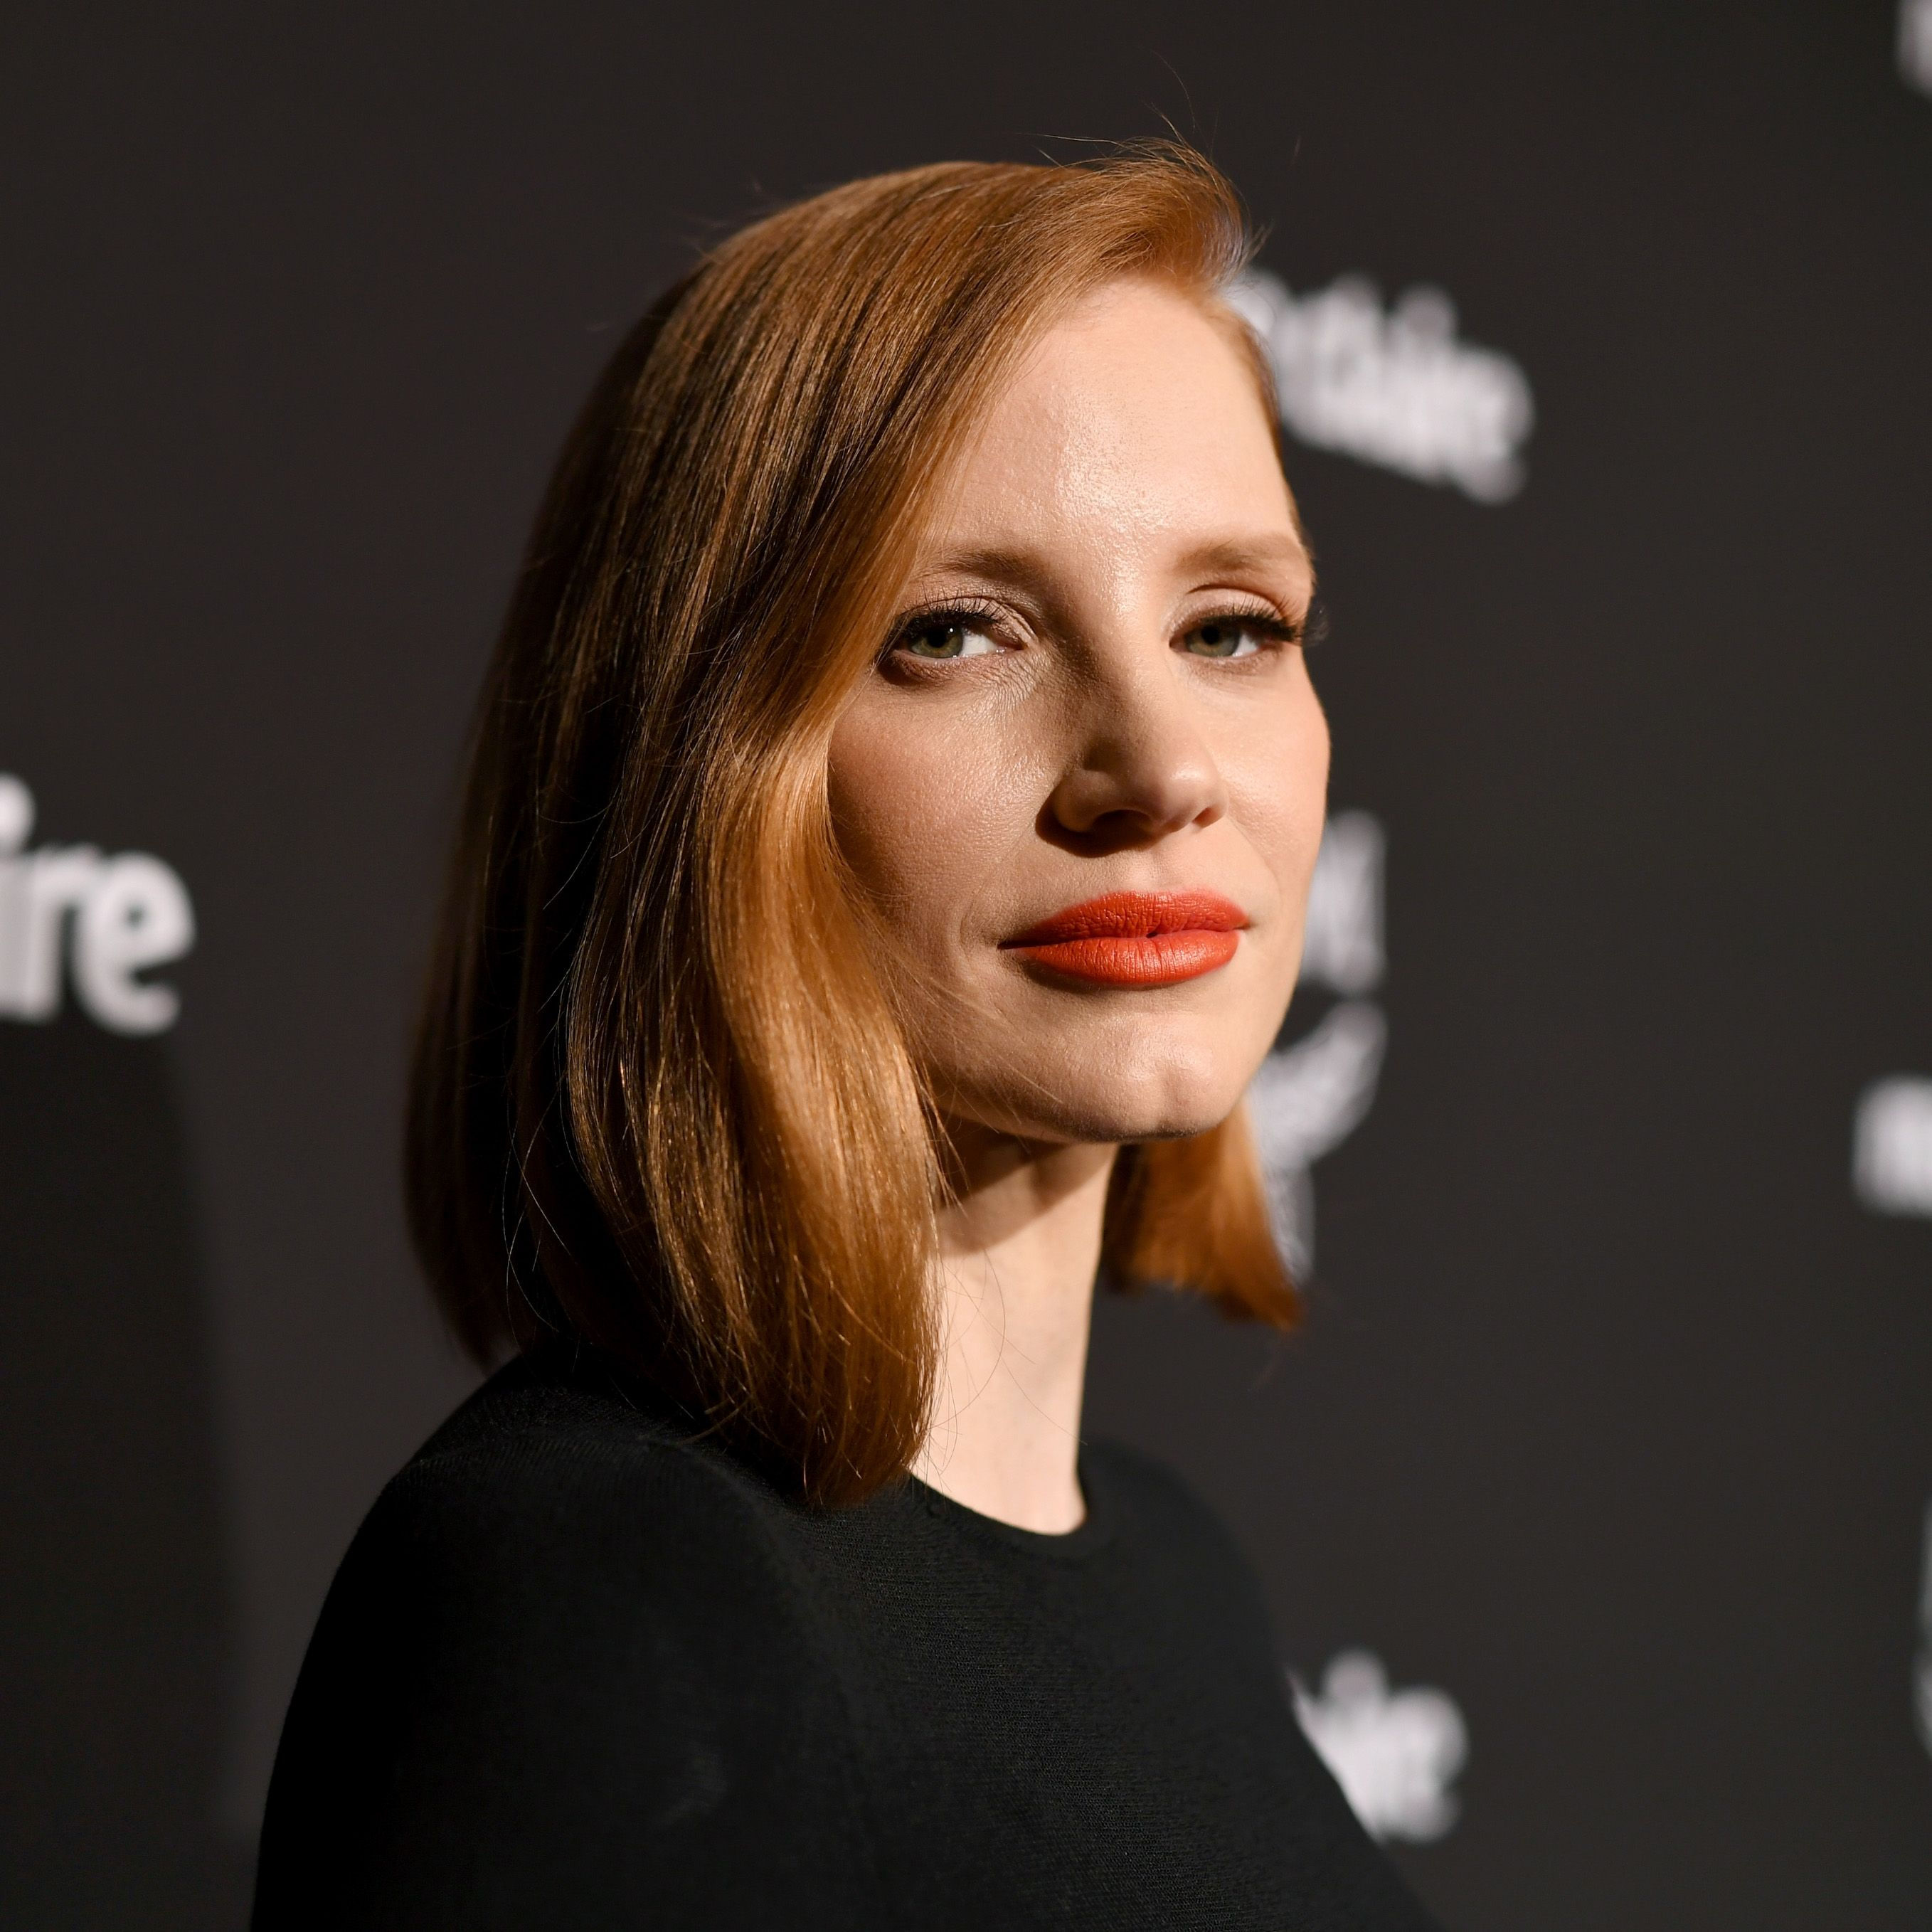 """This started with that beautiful letter that the farmworkers wrote to the actresses and our response to them, and it really is women of all industries linking arms and supporting each other,"" Chastain said of the evolution of the Time's Up movement. ""I think the more we talk and the more we share our stories, the stronger we are."""